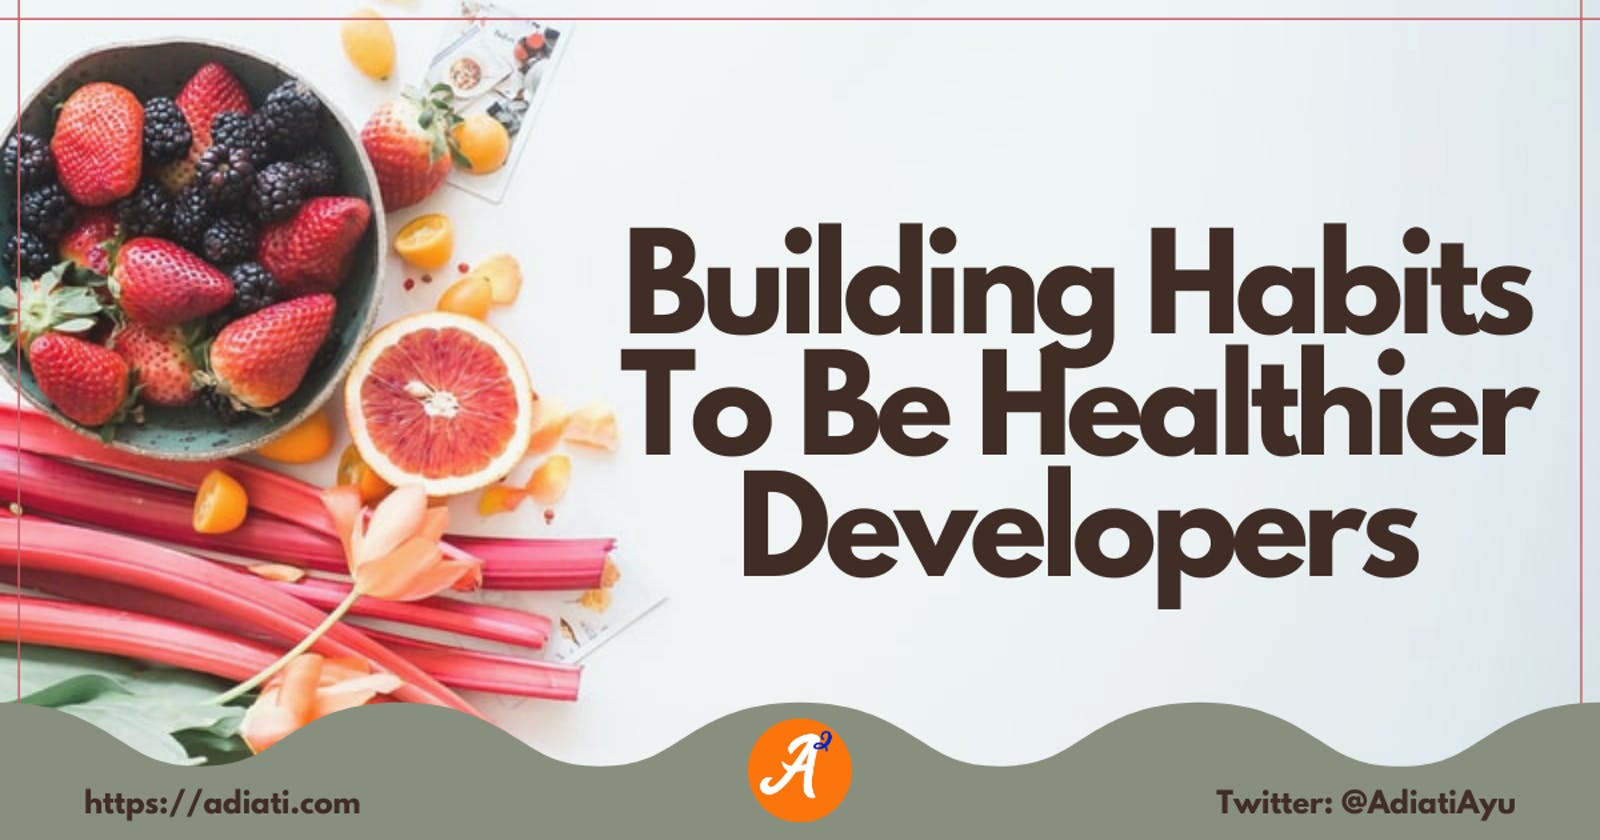 Building Habits To Be Healthier Developers